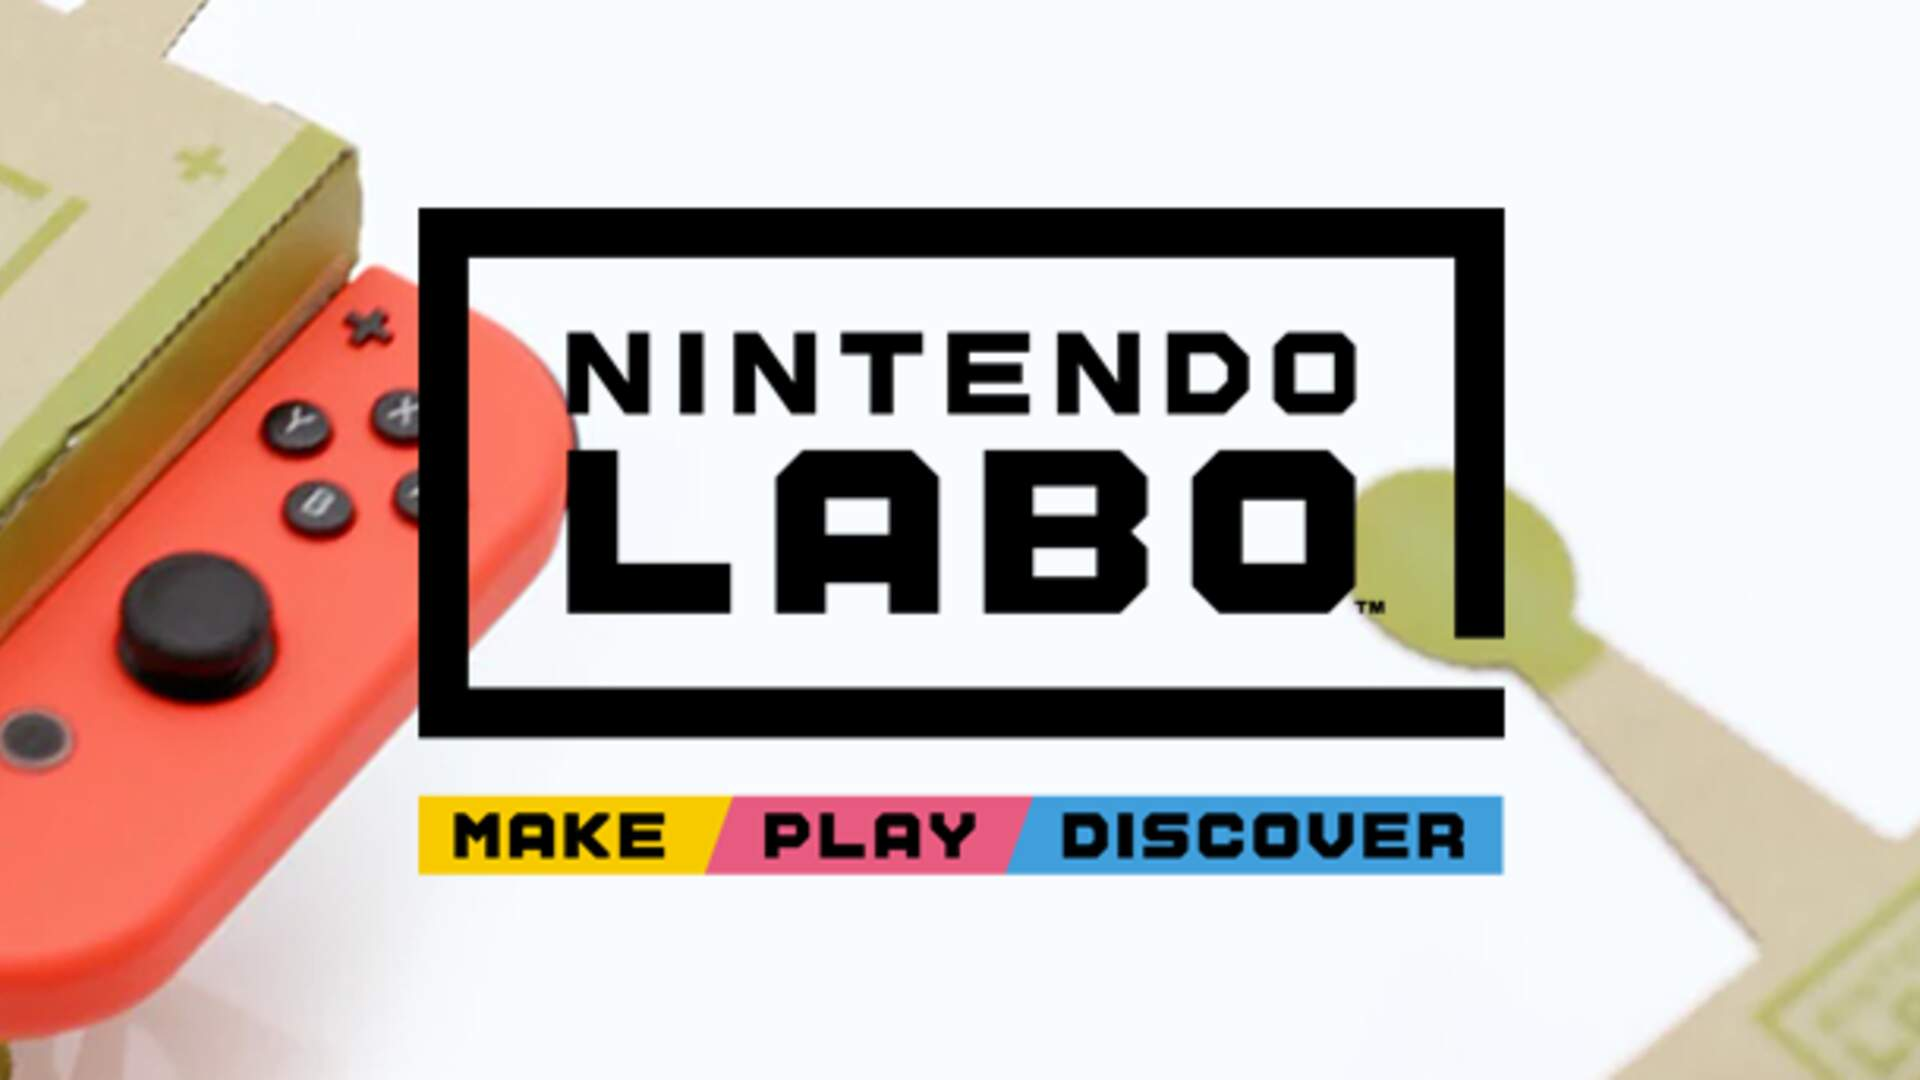 Nintendo Labo for Switch Taps Into the DIY Spirit for New Types of Play